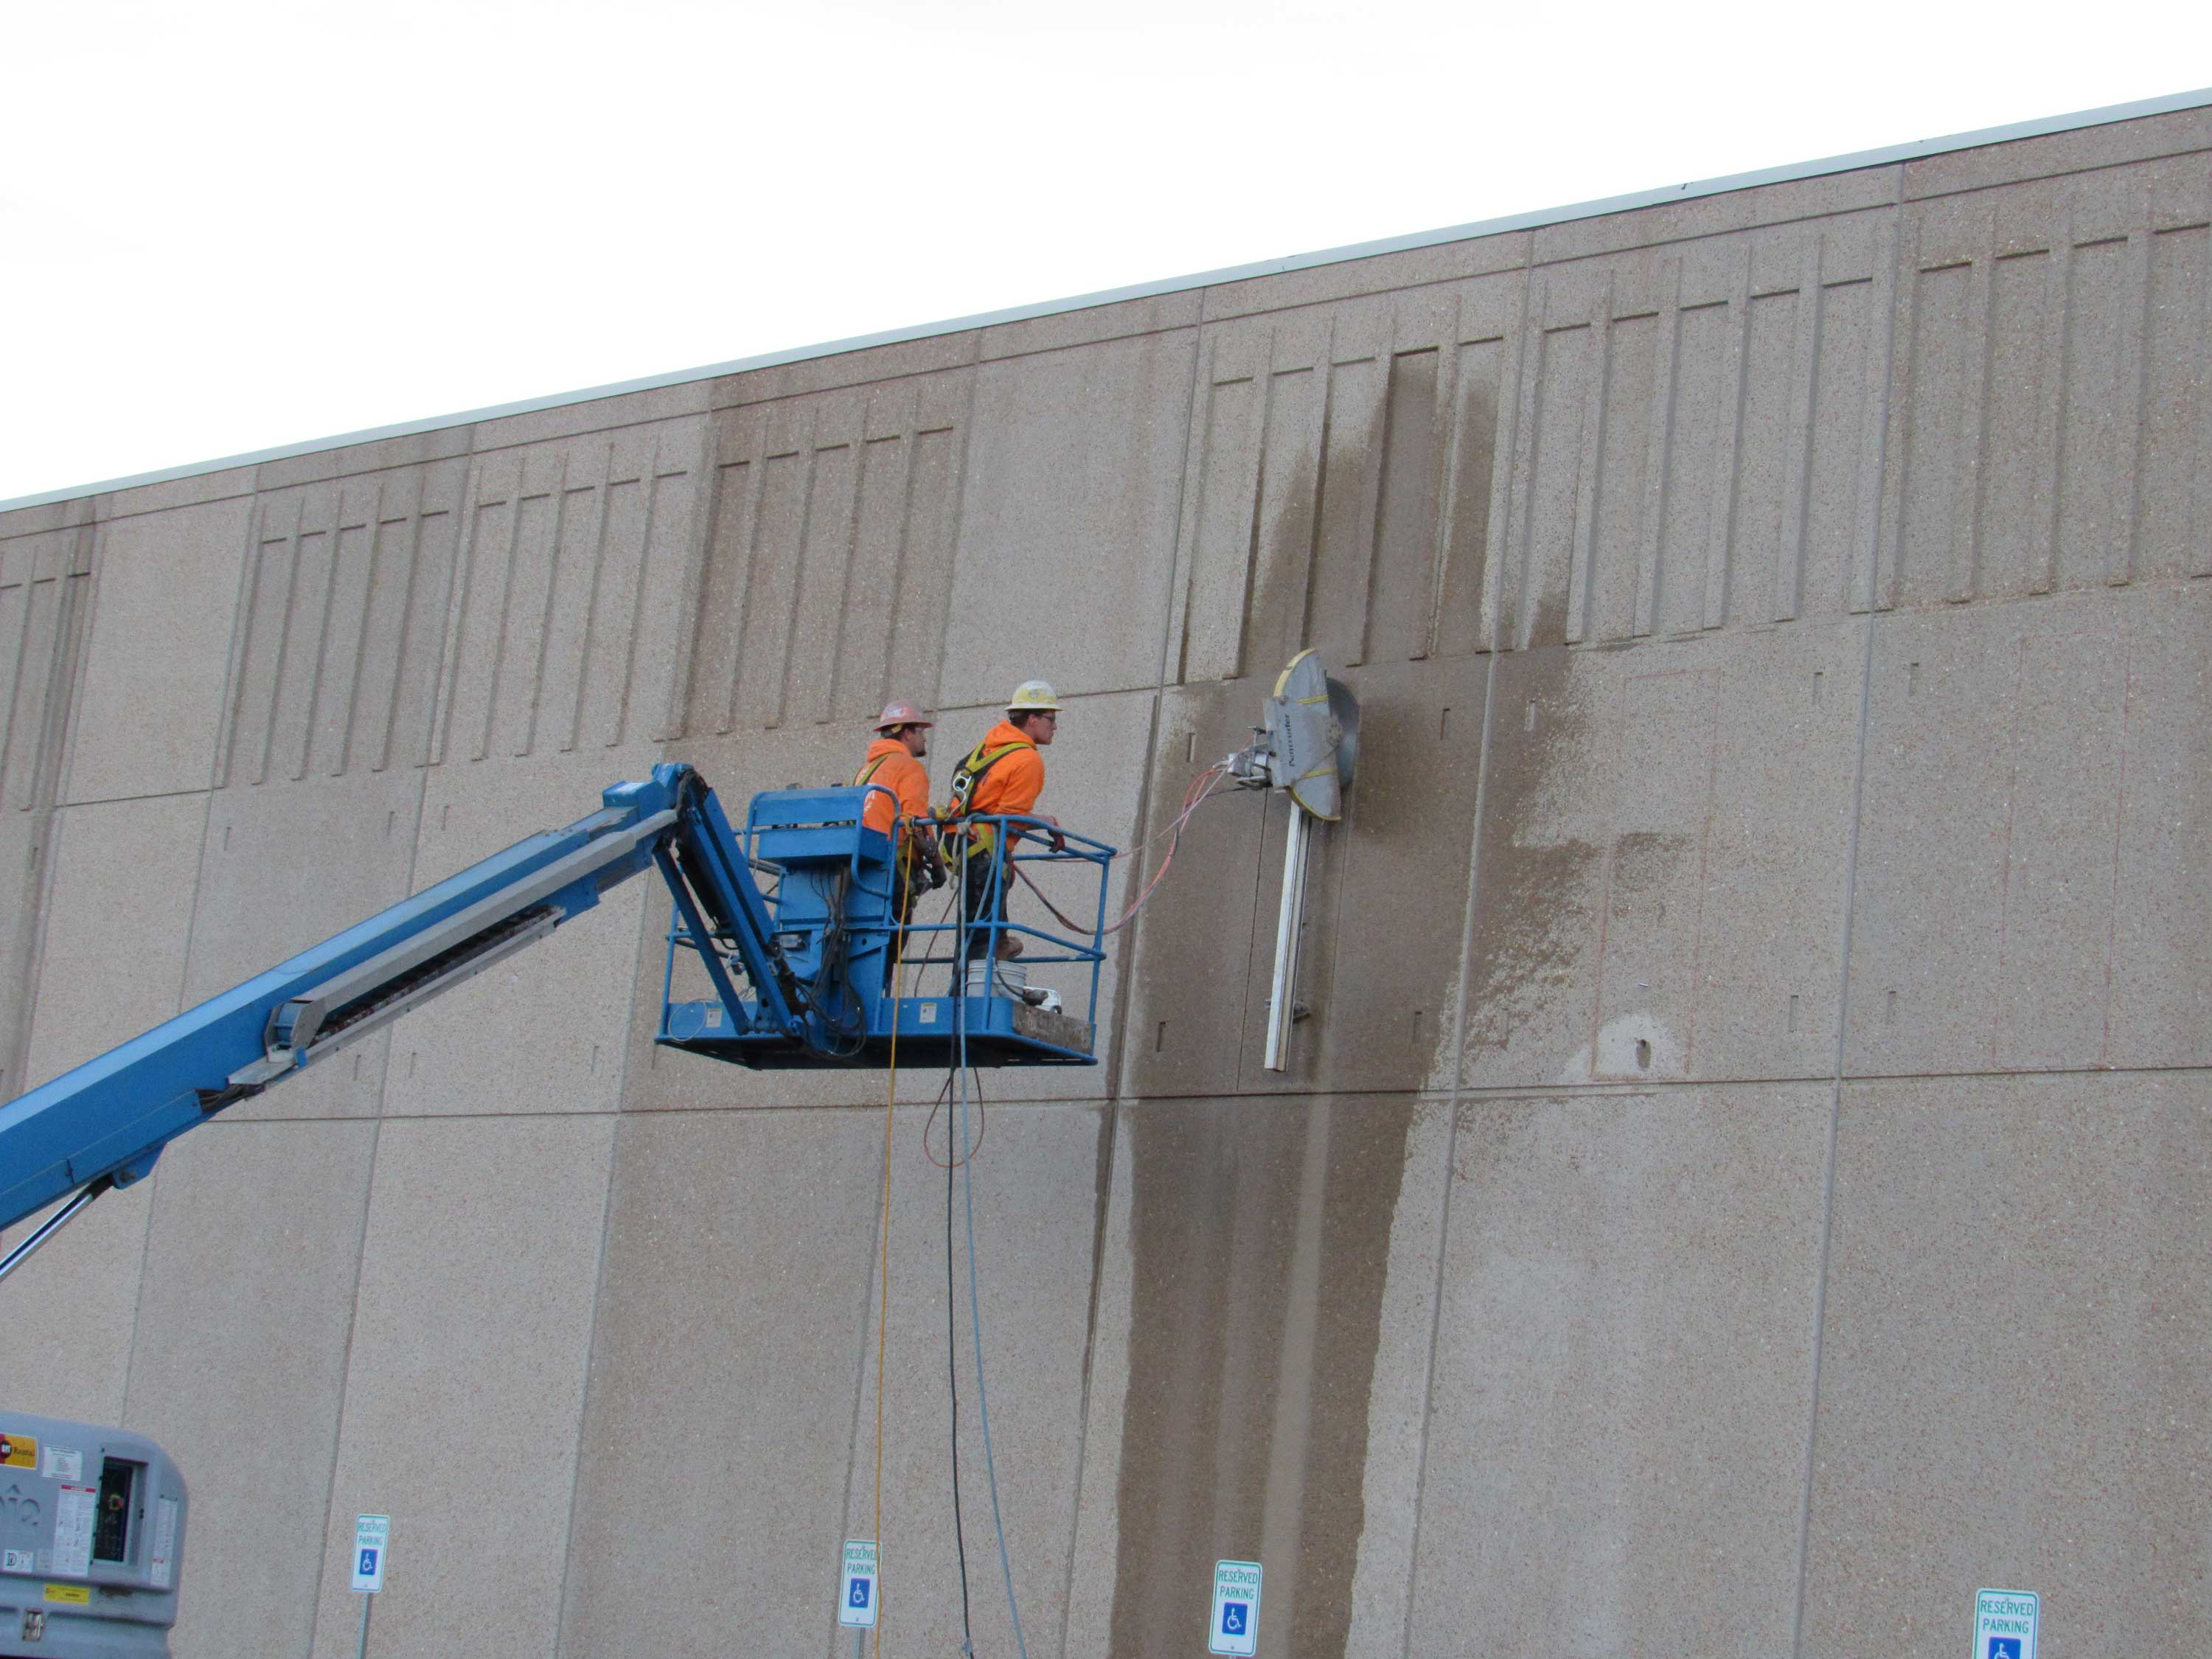 Pacific Concrete Wall Sawing : Concrete wall sawing photos precision cutting and coring